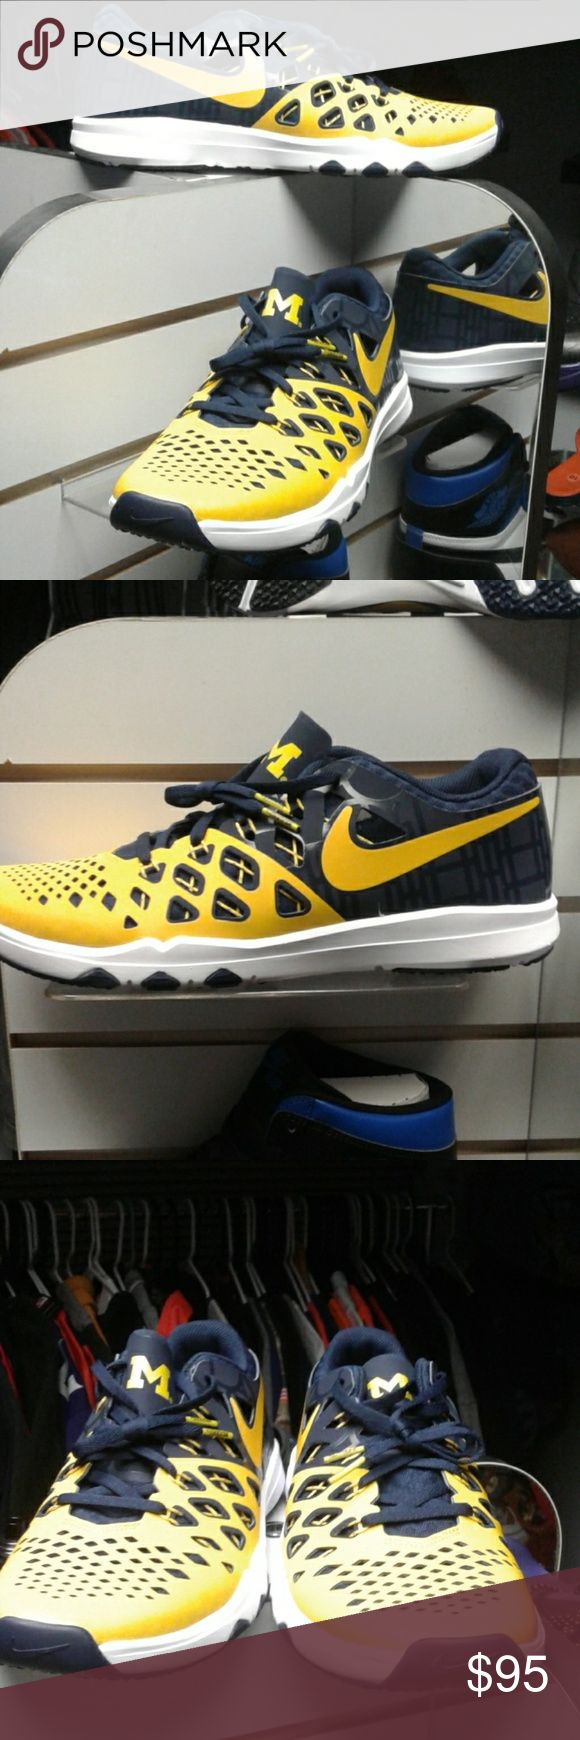 Nike Air Vapor Max Michigan Wolverines shoes 9.5 Brand new never worn university of Michigan Wolverines authentic officially licensed Nike and NCAA product size 9.5 Ship's same day as purchase Nike Shoes Athletic Shoes